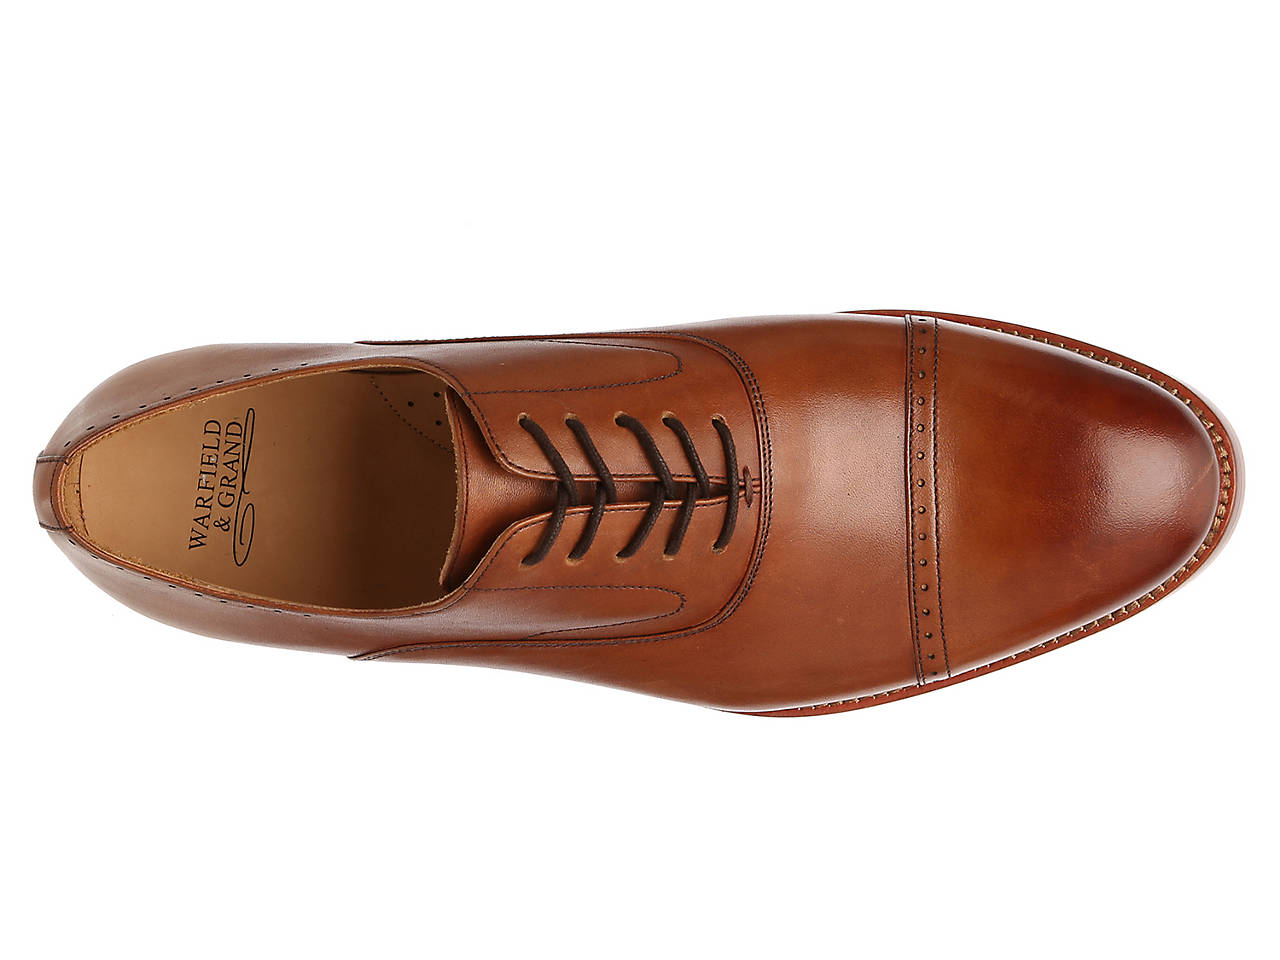 Warfield & Grand Ian Pebbled Leather Derby Prices Cheap Shop Latest Cheap Online Sale Online Shopping SRqE9a